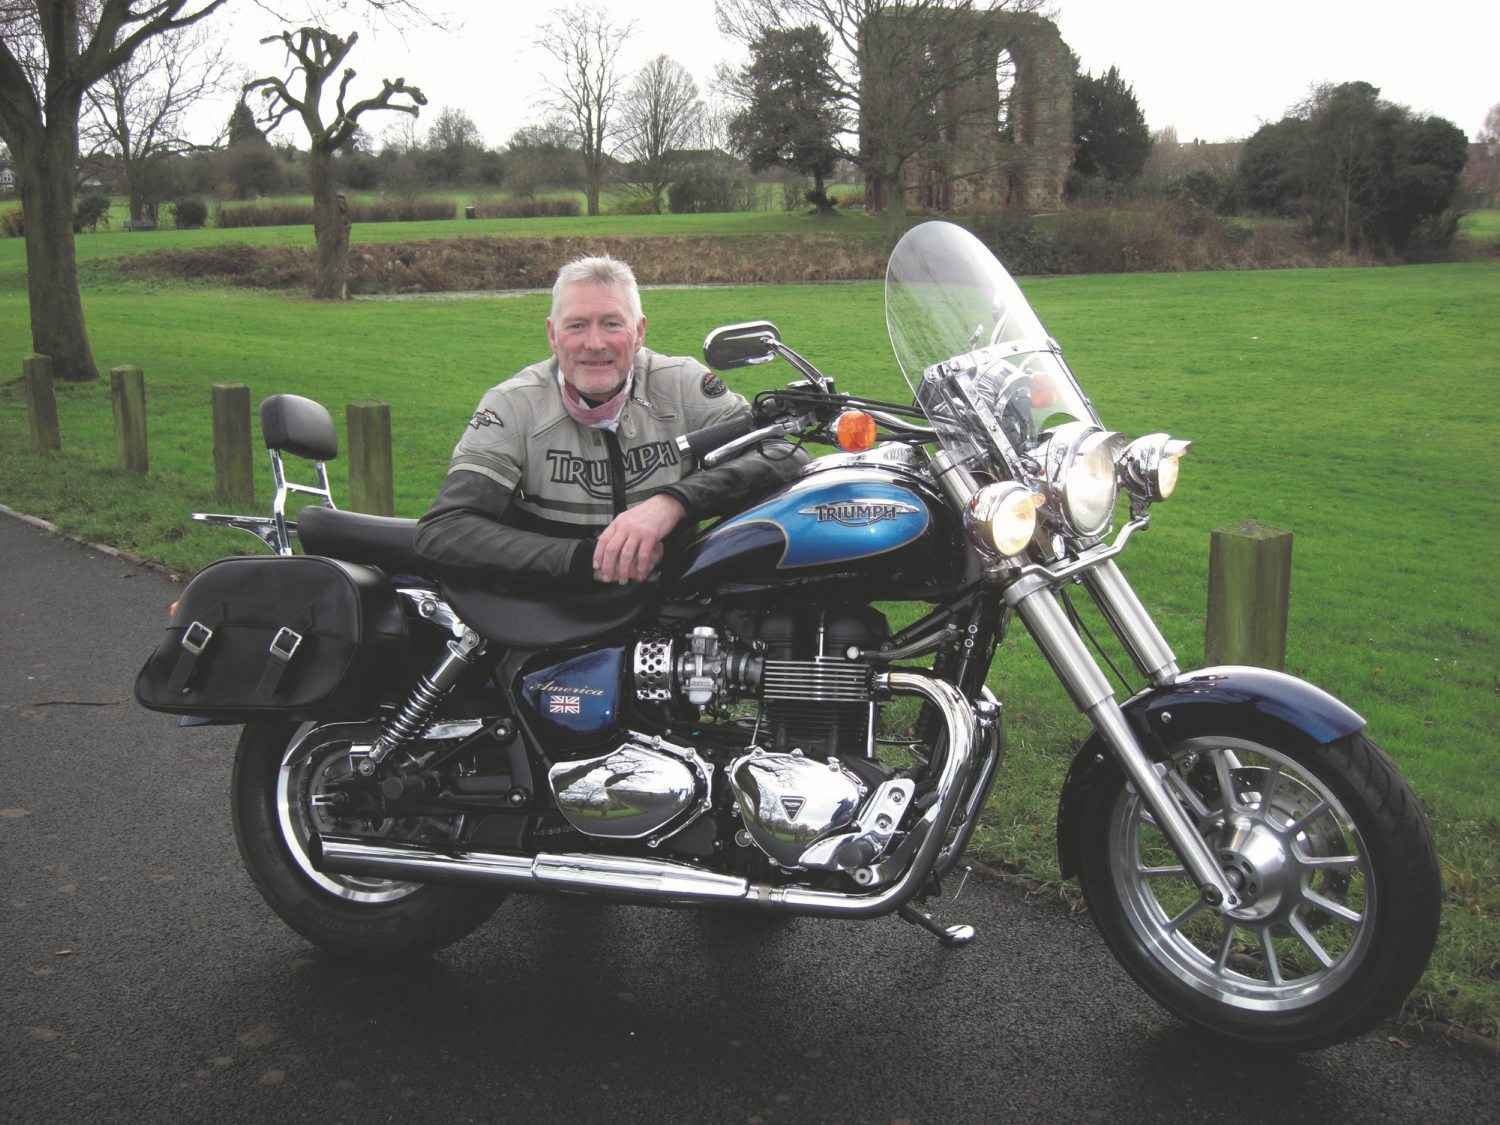 035_Andy-Malin-and-Triumph2